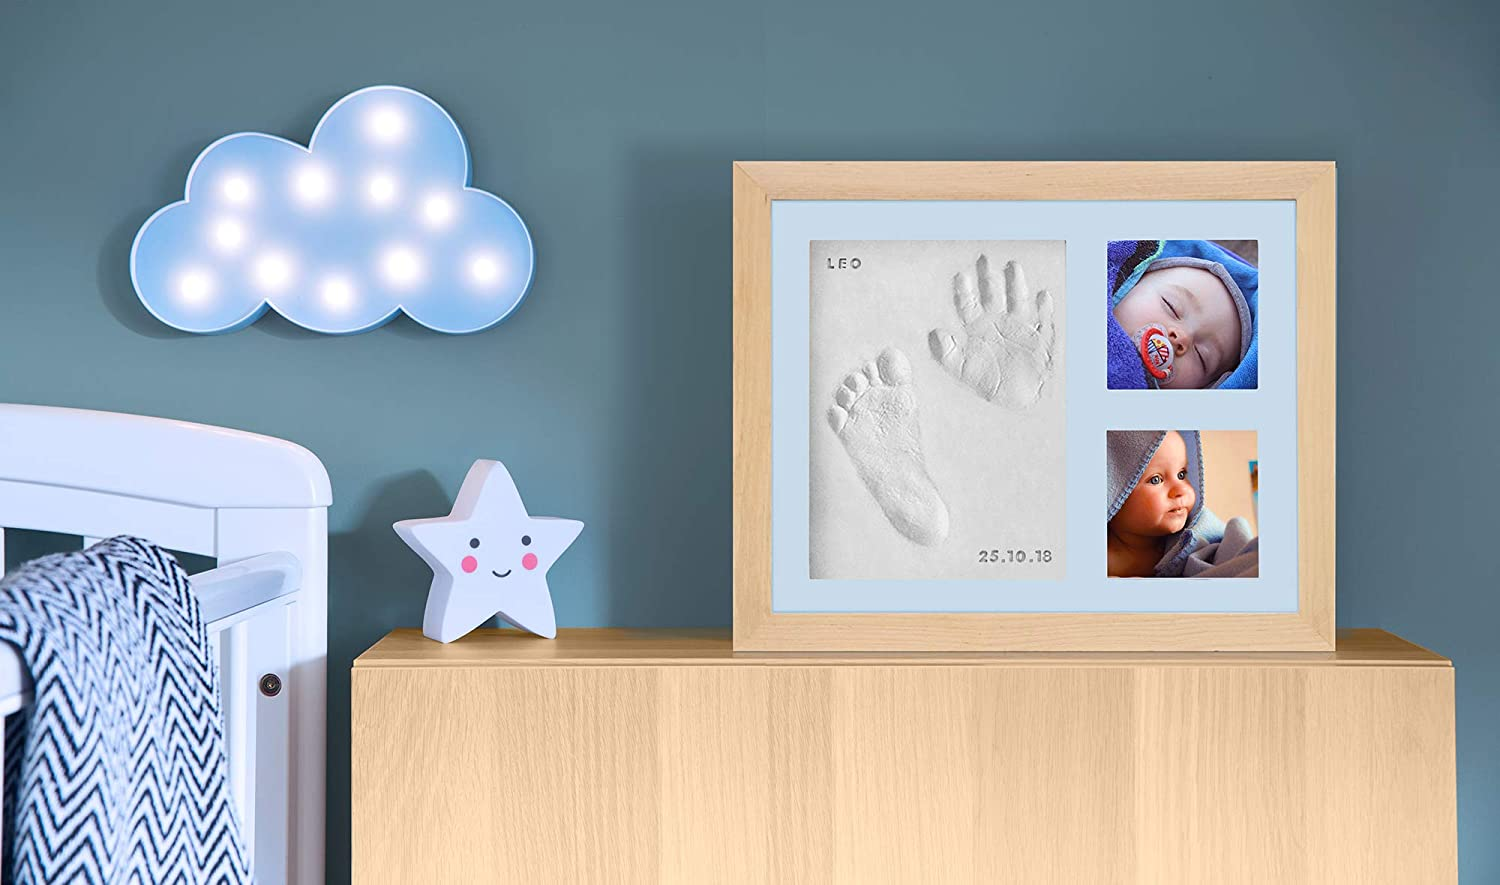 Baby Handprint Photo Frame kit by Kubai Letters /& Numbers Stamps with Choice of mat to Personalize Your Keepsake for Baby Shower /& Registry Birthday Gift Room//Wall//Nursery Decor pet//Dog Ornament